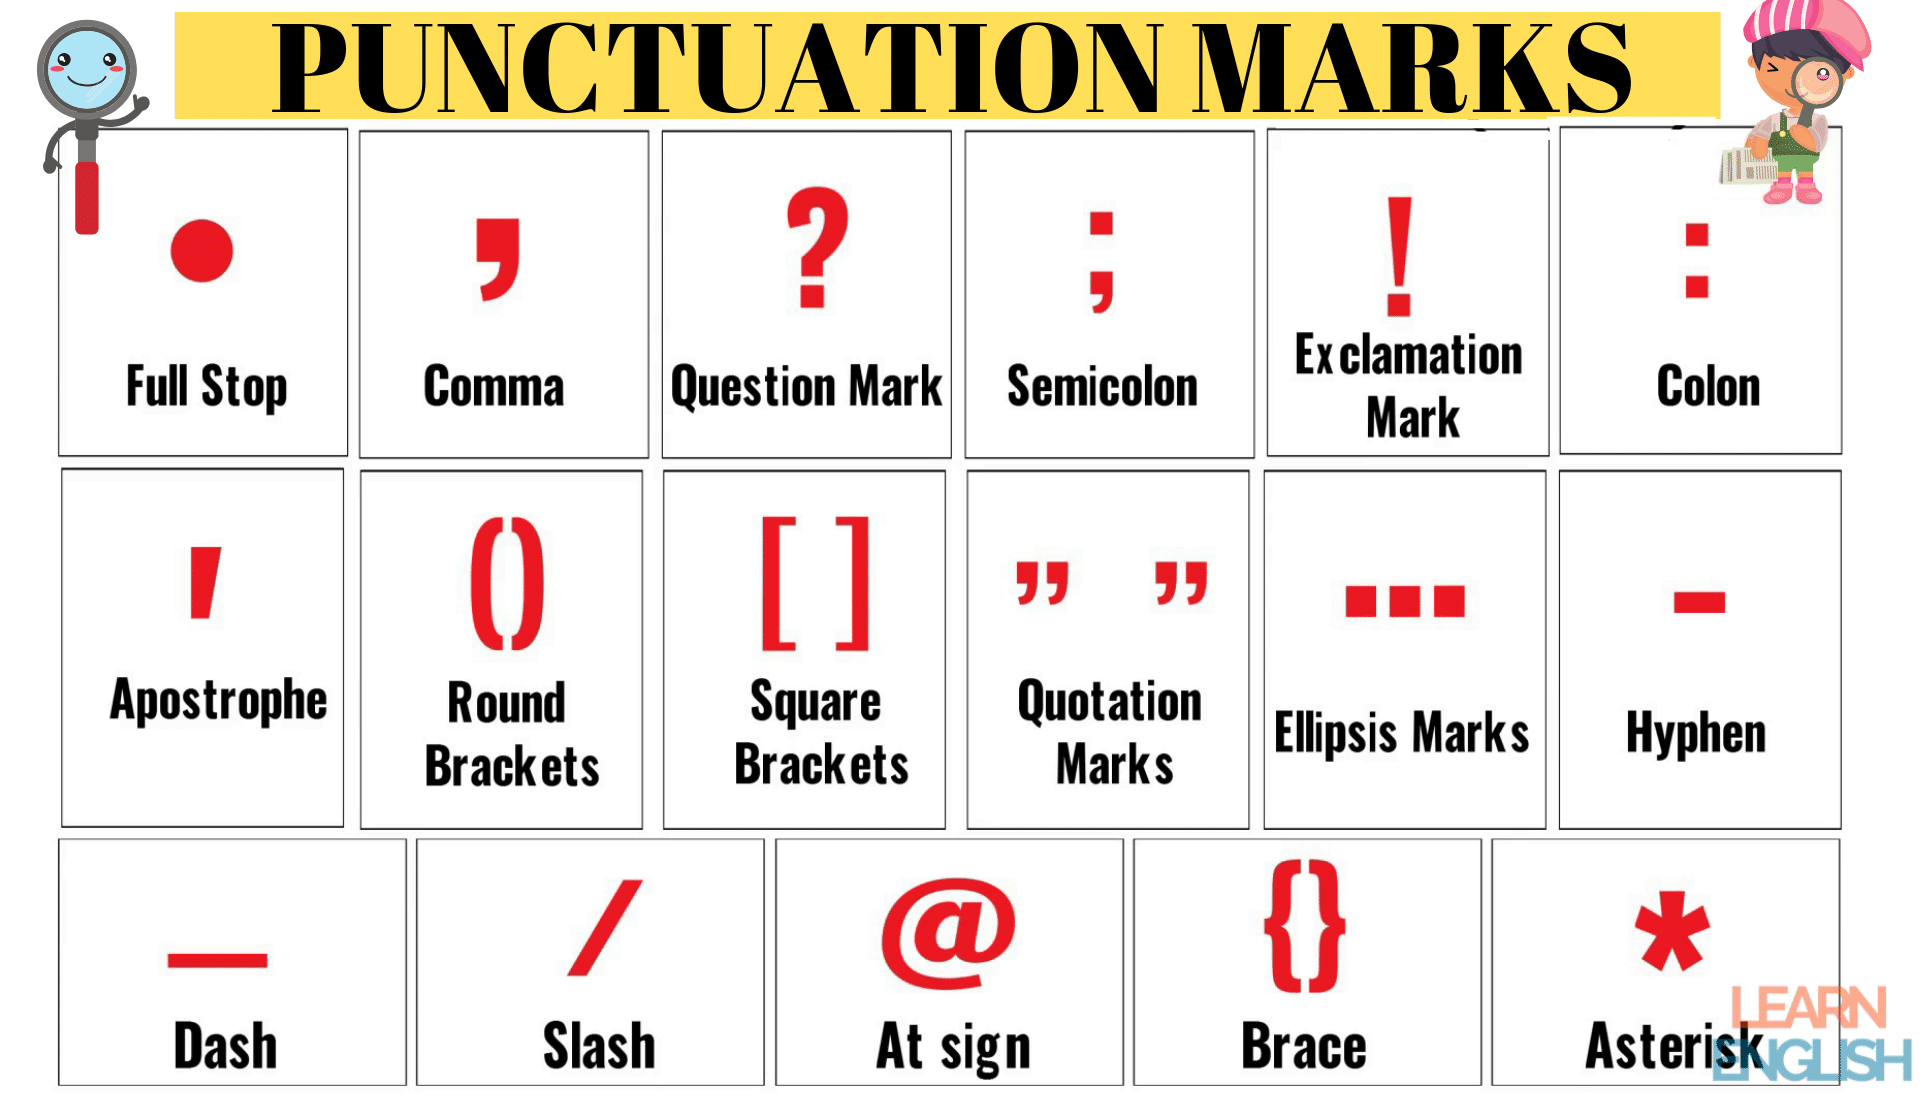 Punctuation Marks: List of Important Punctuation Marks in English Grammar